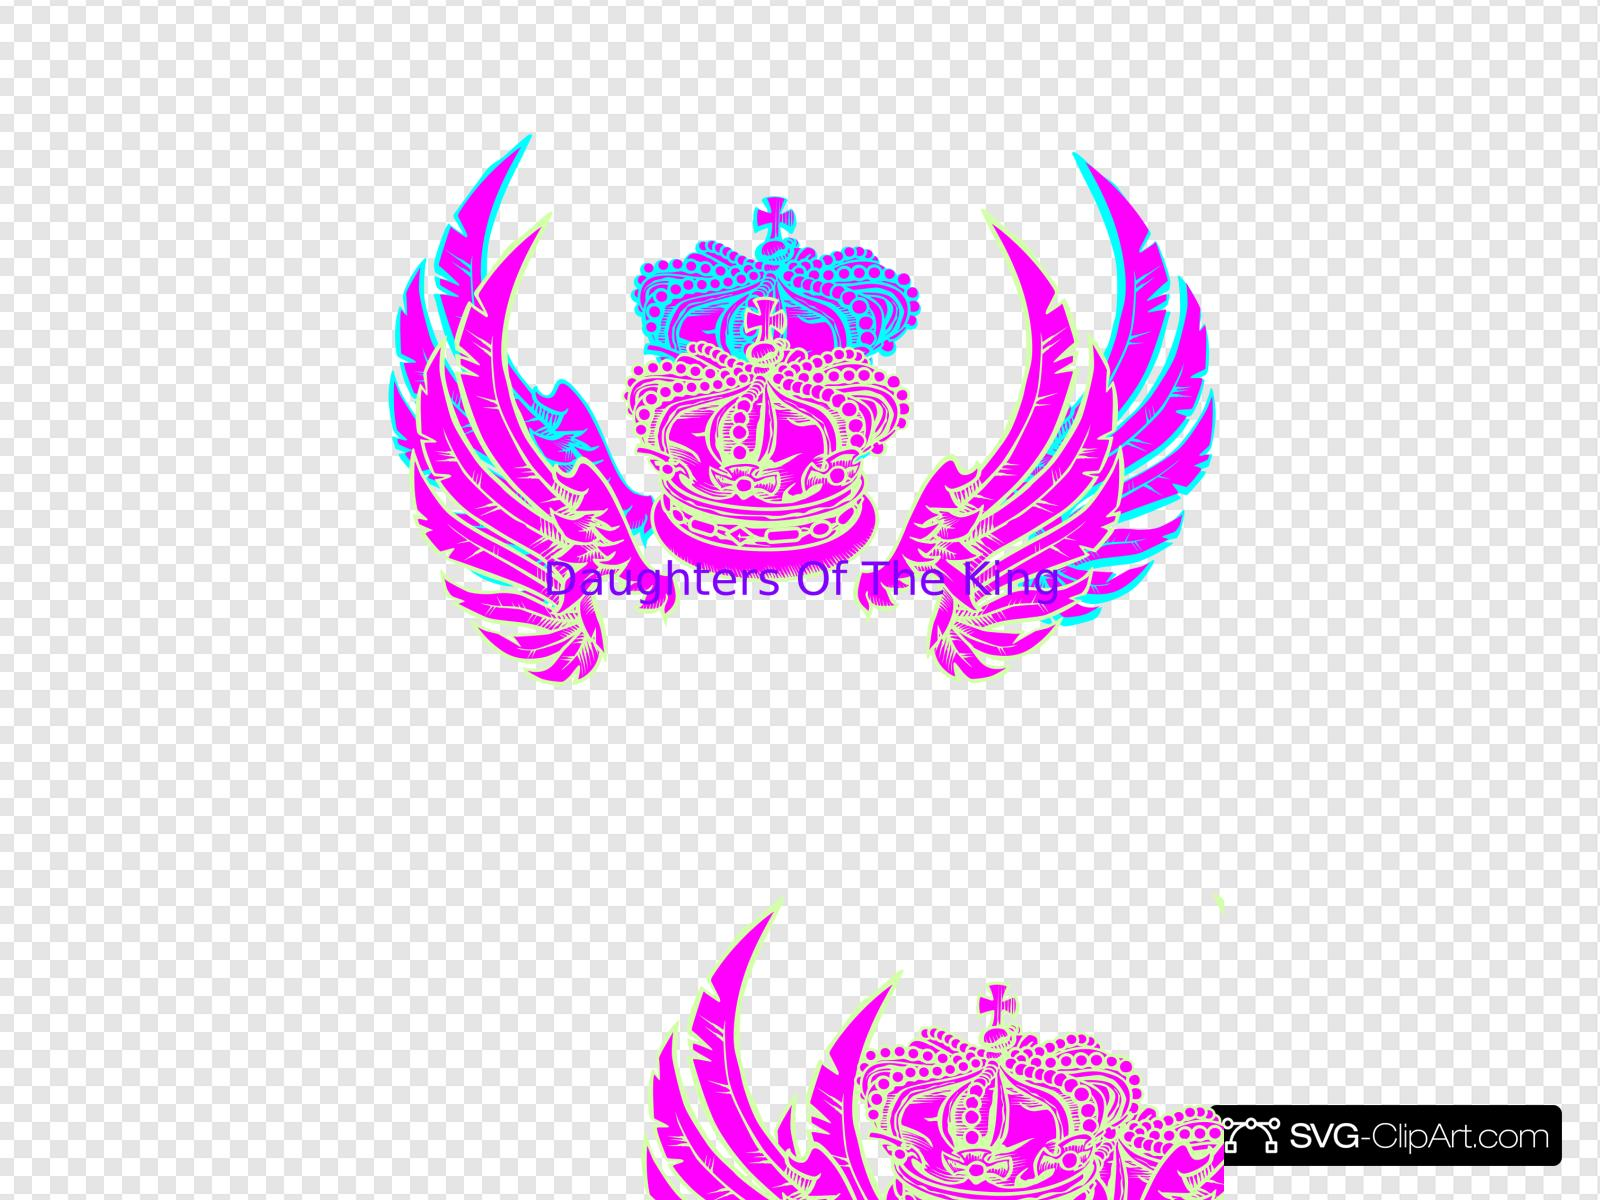 Daughters Of The King Clip art, Icon and SVG.